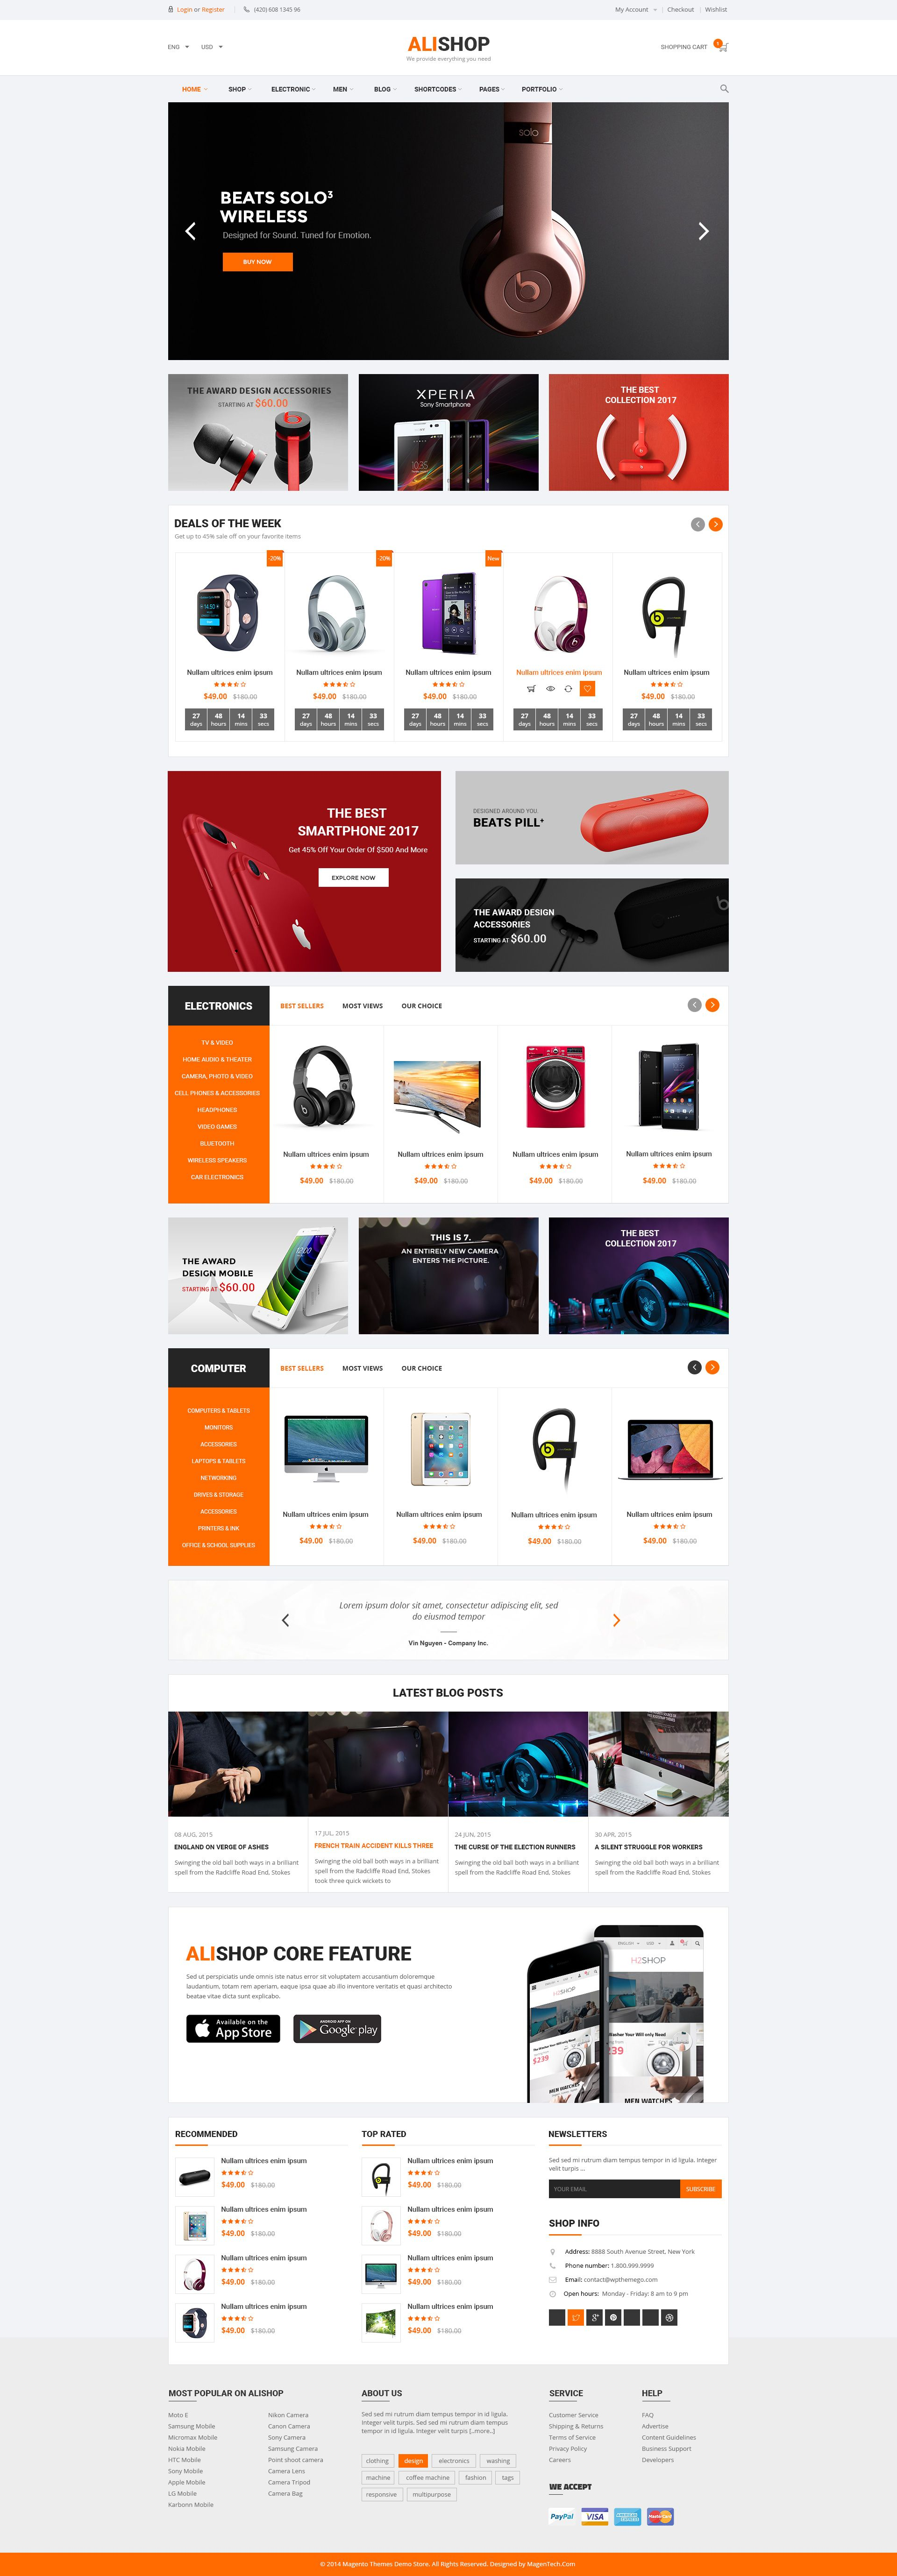 AliShop - Responsive WooCommerce Theme Screenshot 2